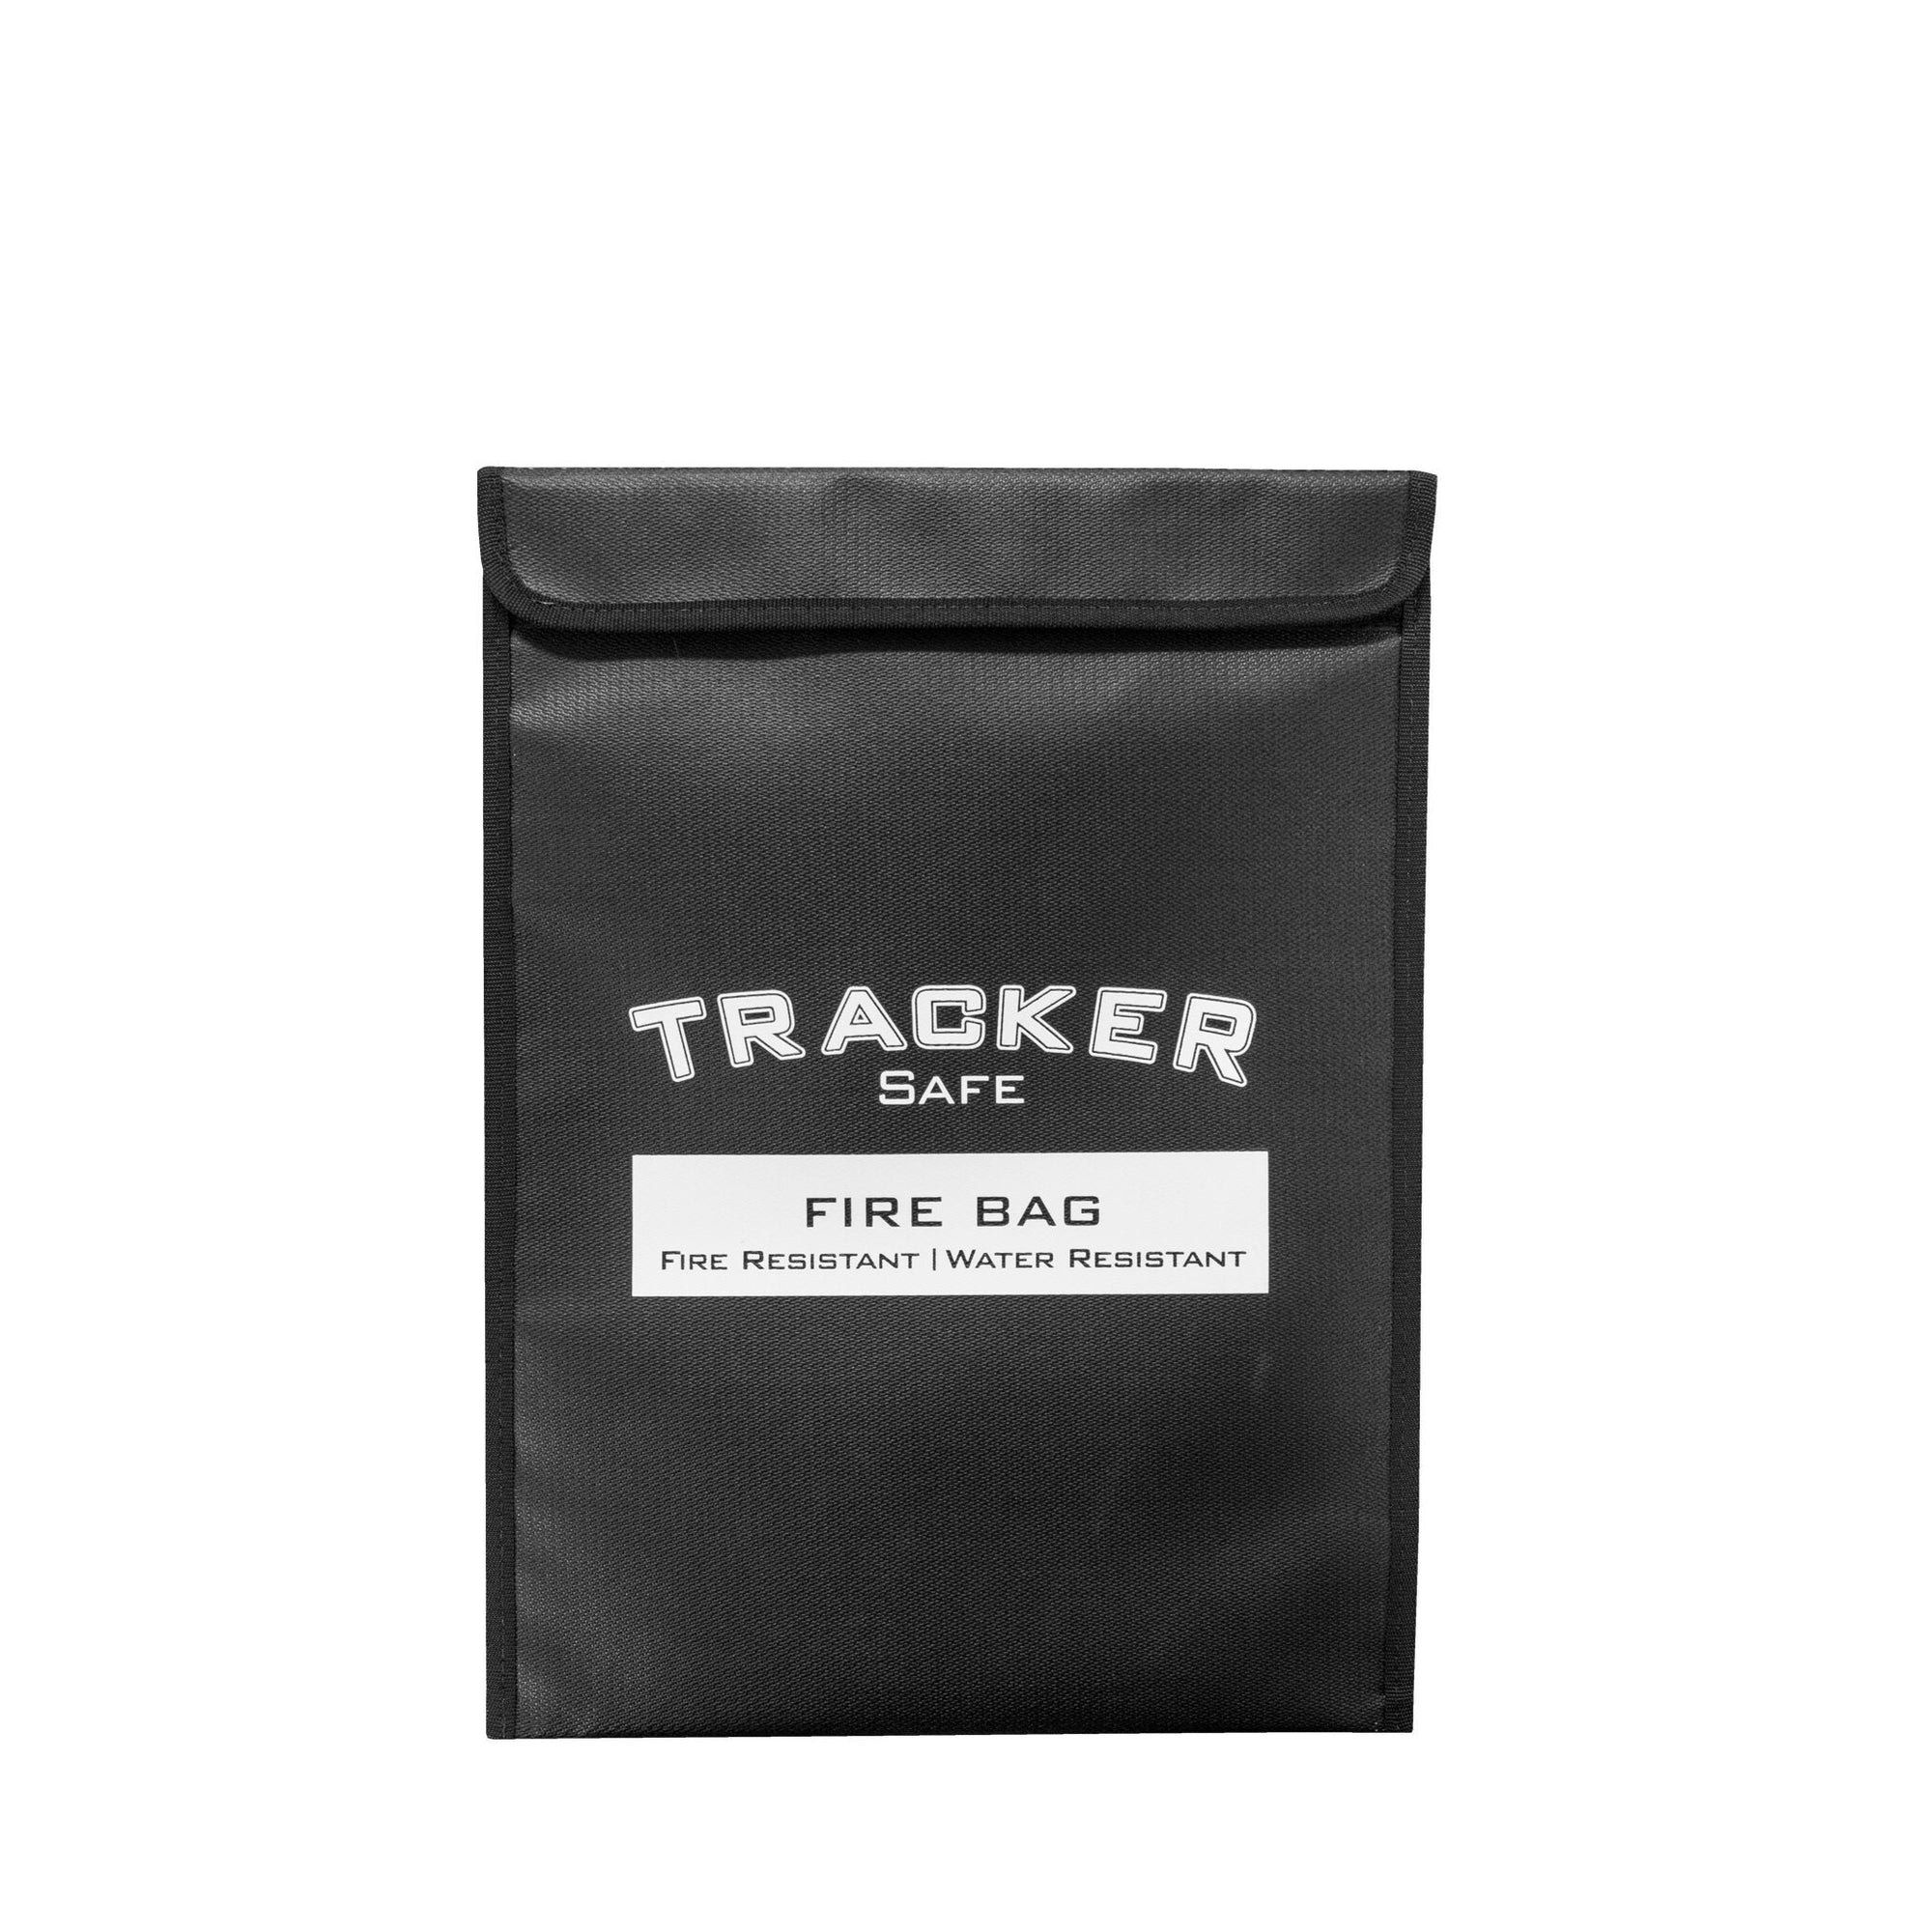 Accessories - Tracker FB1511 Fire & Water Resistant Bag